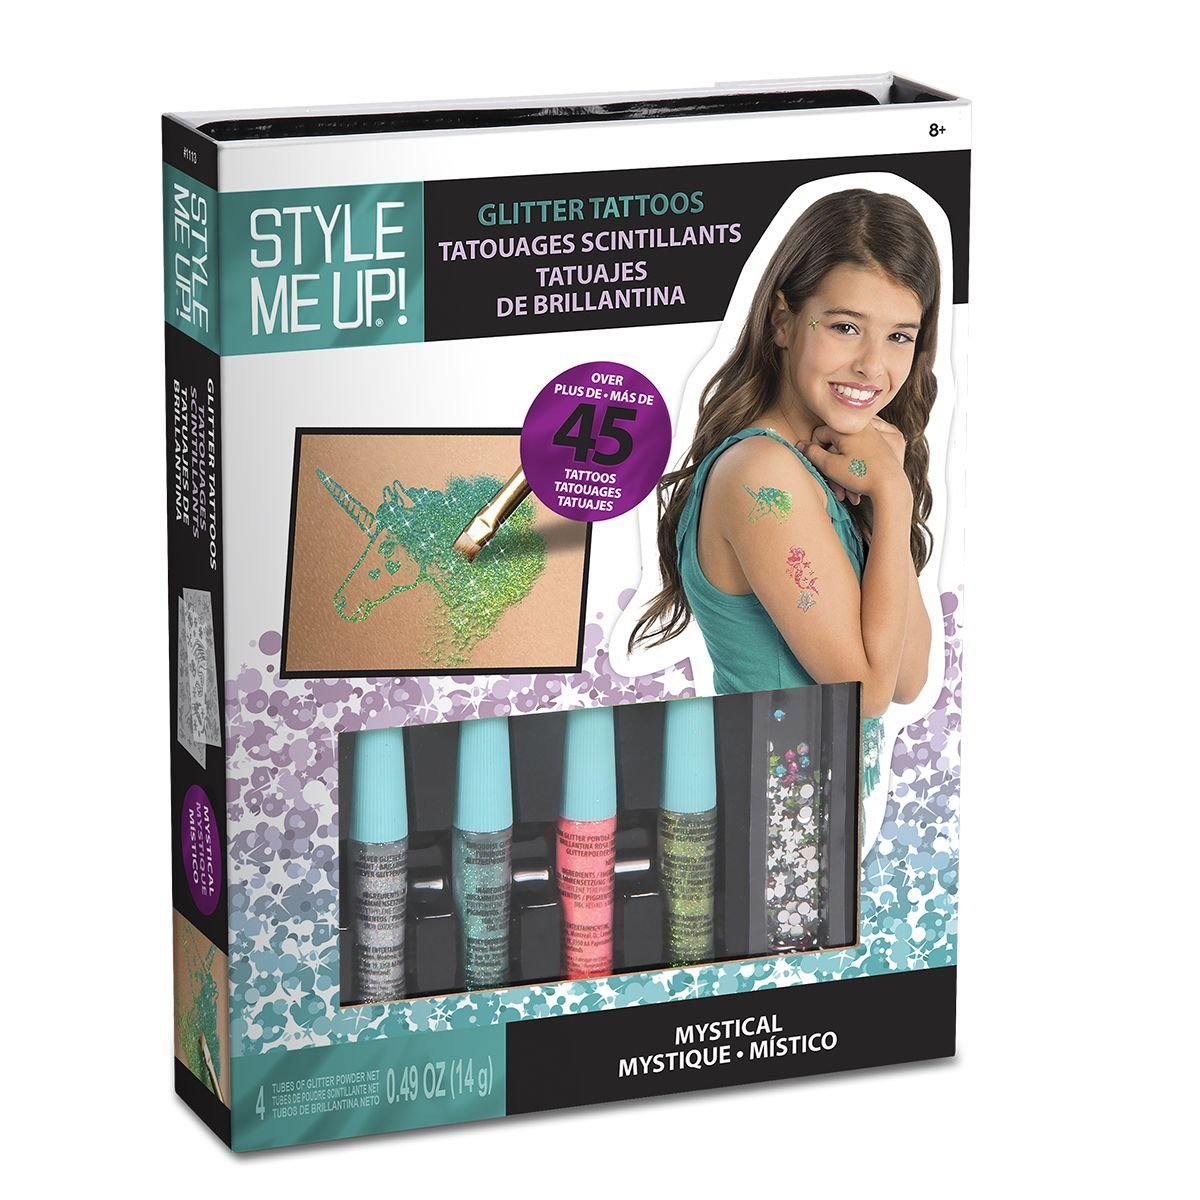 Style Me Up - Kids' Glittering Tattoo Set, Sparkling Tattoo Craft Kit for Girls and Boys, Creative Gift Idea for Birthday - SMU-1113